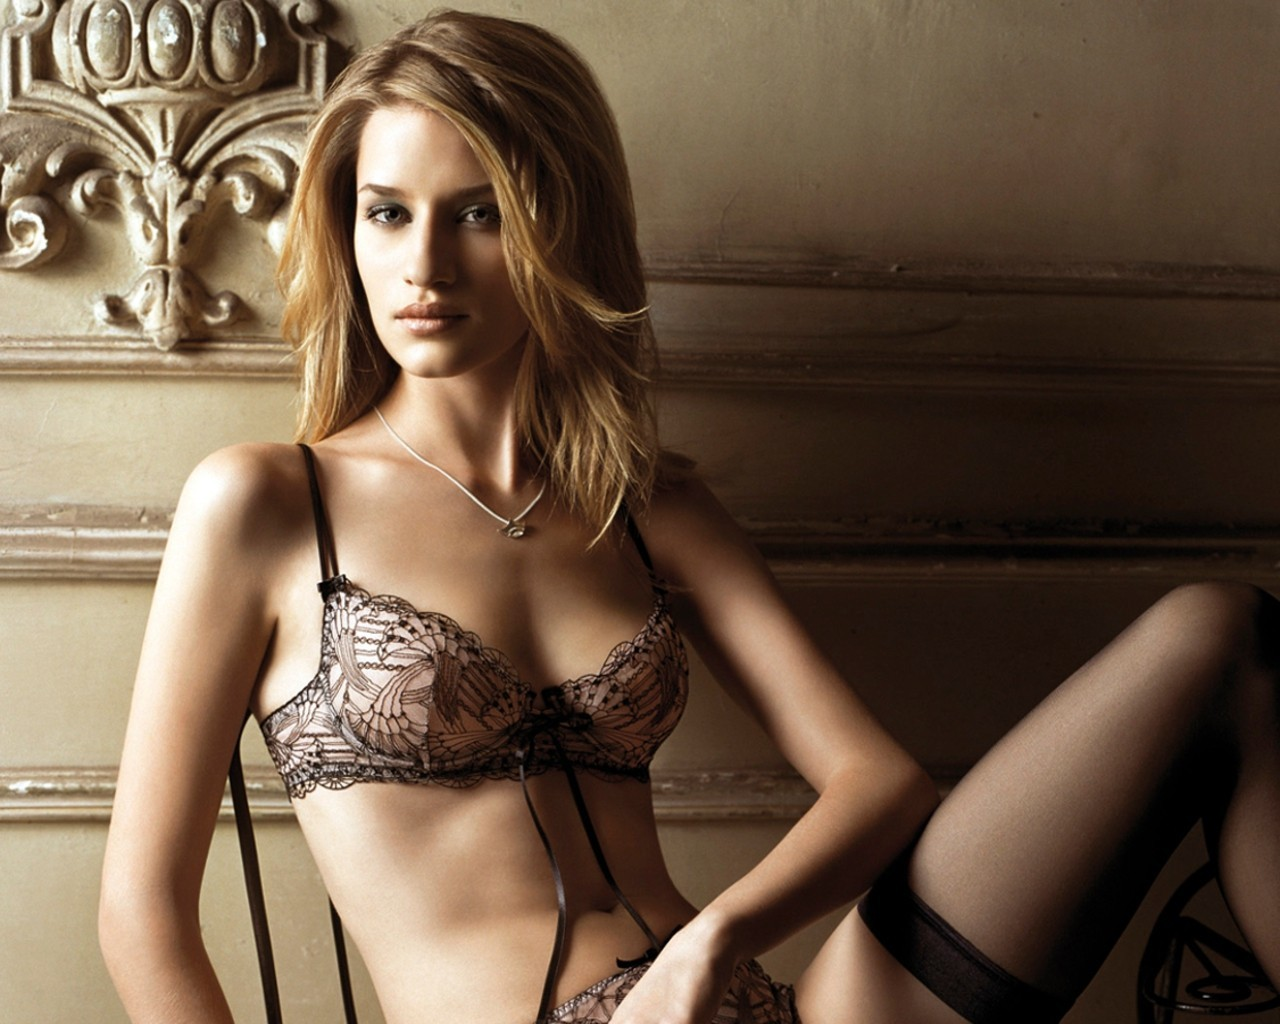 woman blondes lingerie Linda Vojtova HD Wallpaper